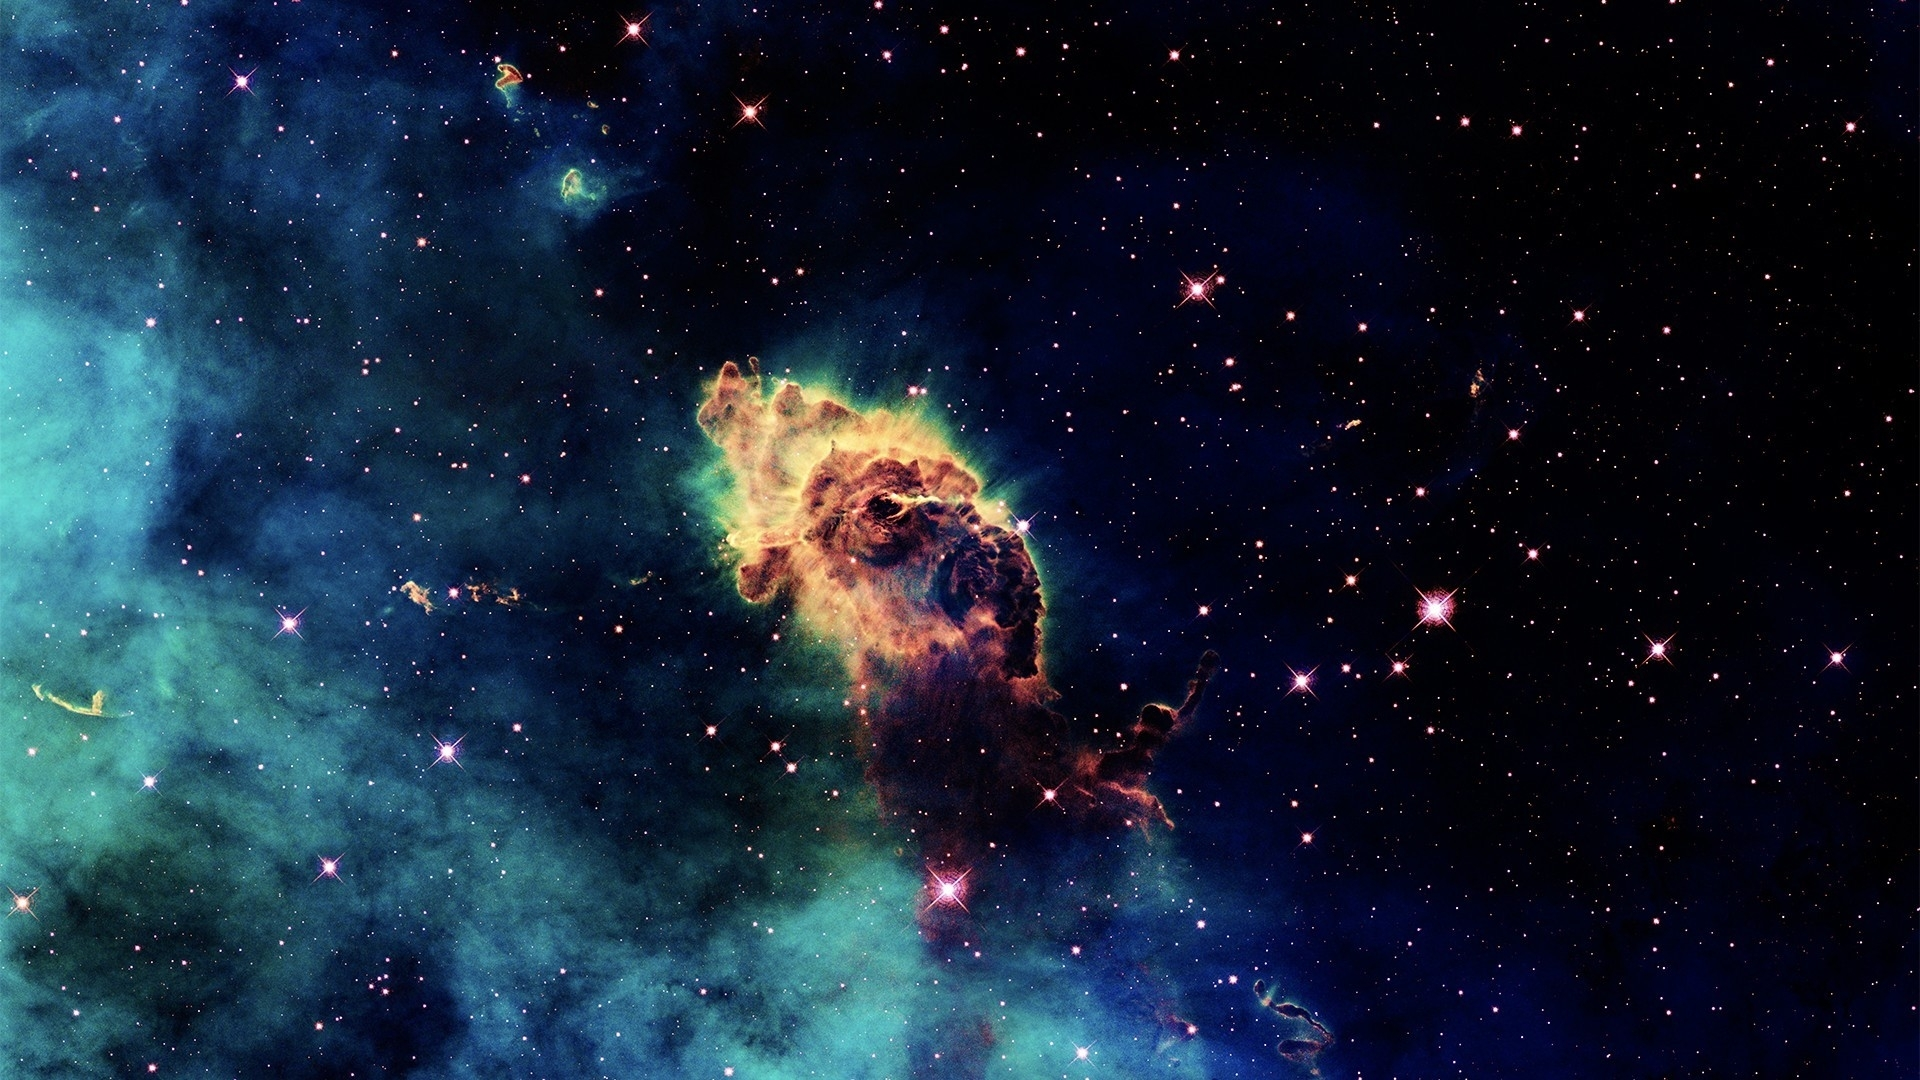 1080p wallpaper space ·① download free amazing full hd wallpapers